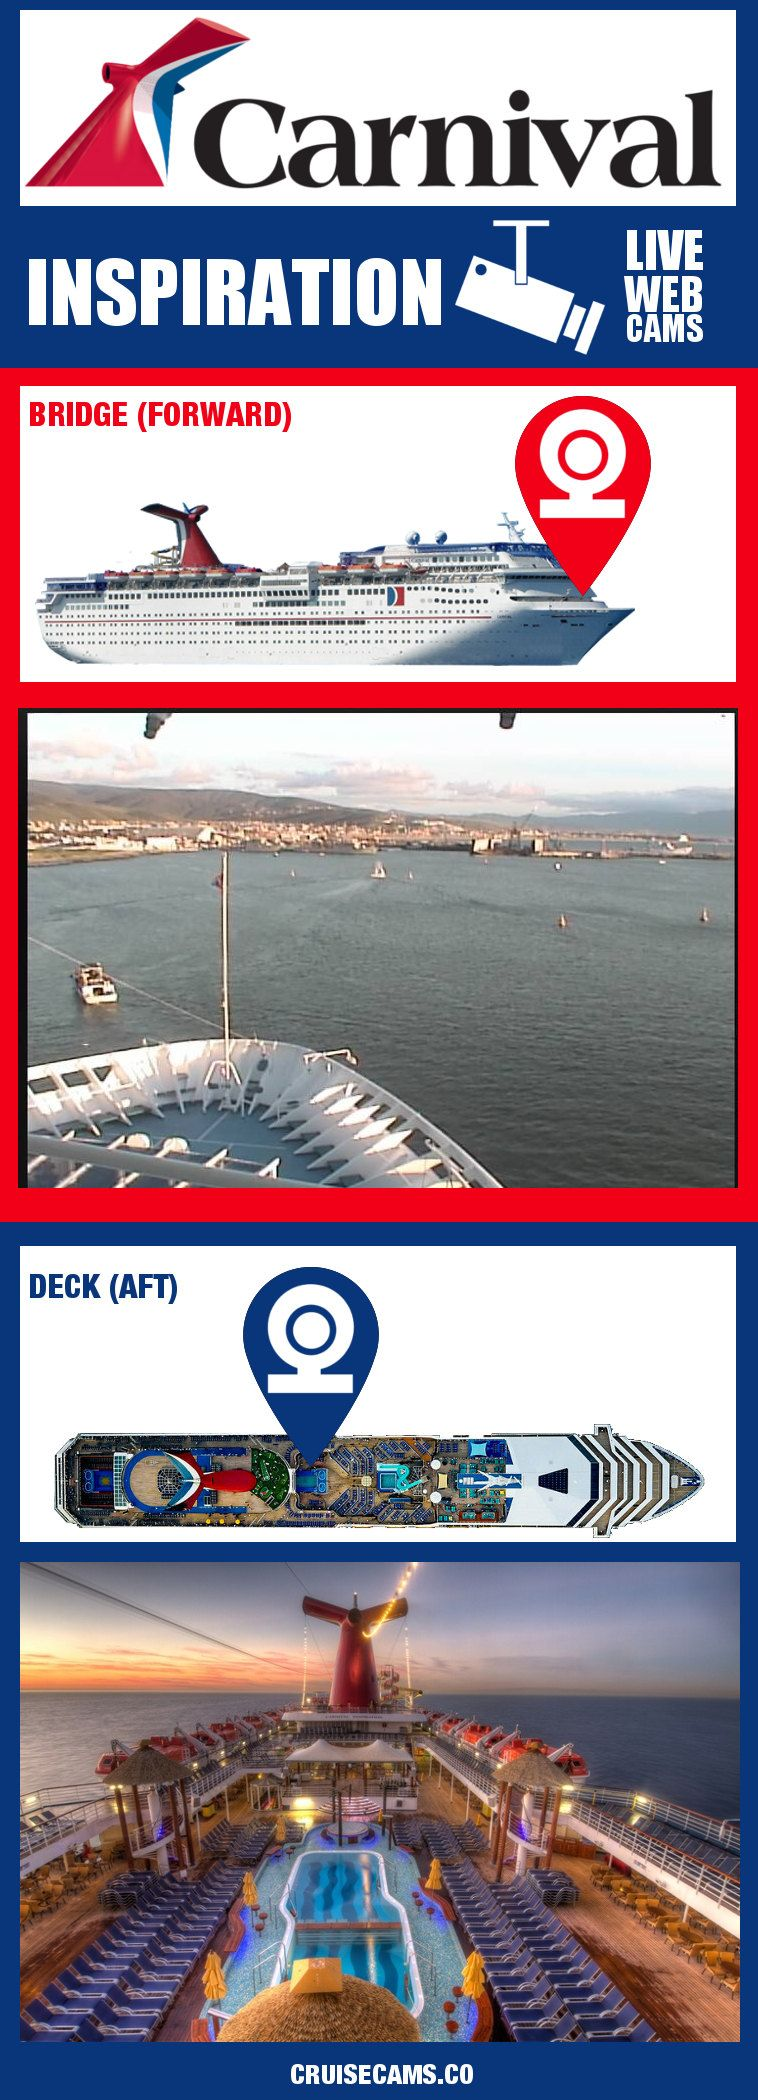 Carnival Inspiration Webcams See This And All Carnival Cruise - Cruise ship live webcams